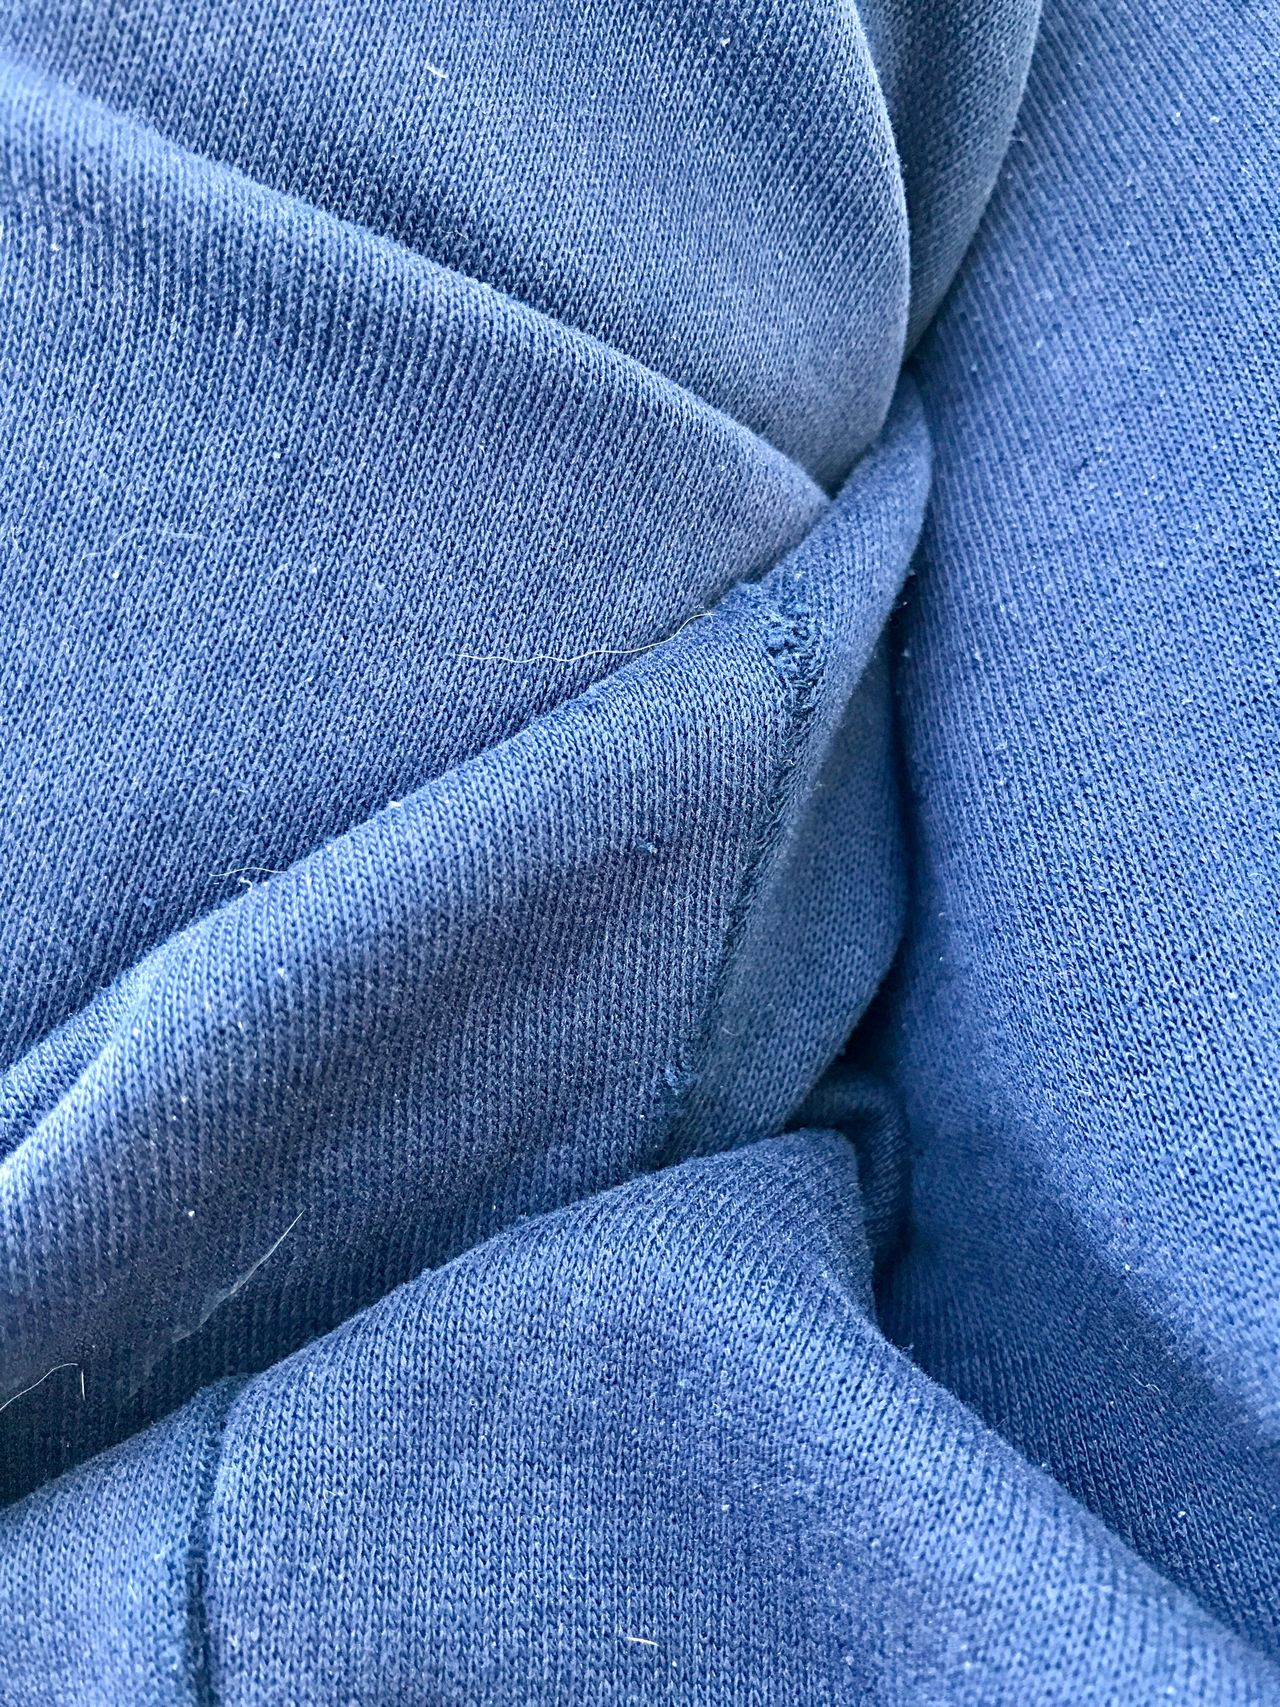 Textile Backgrounds Textured  Blue Full Frame Material Wool Gray Industry Close-up No People Indoors  Day